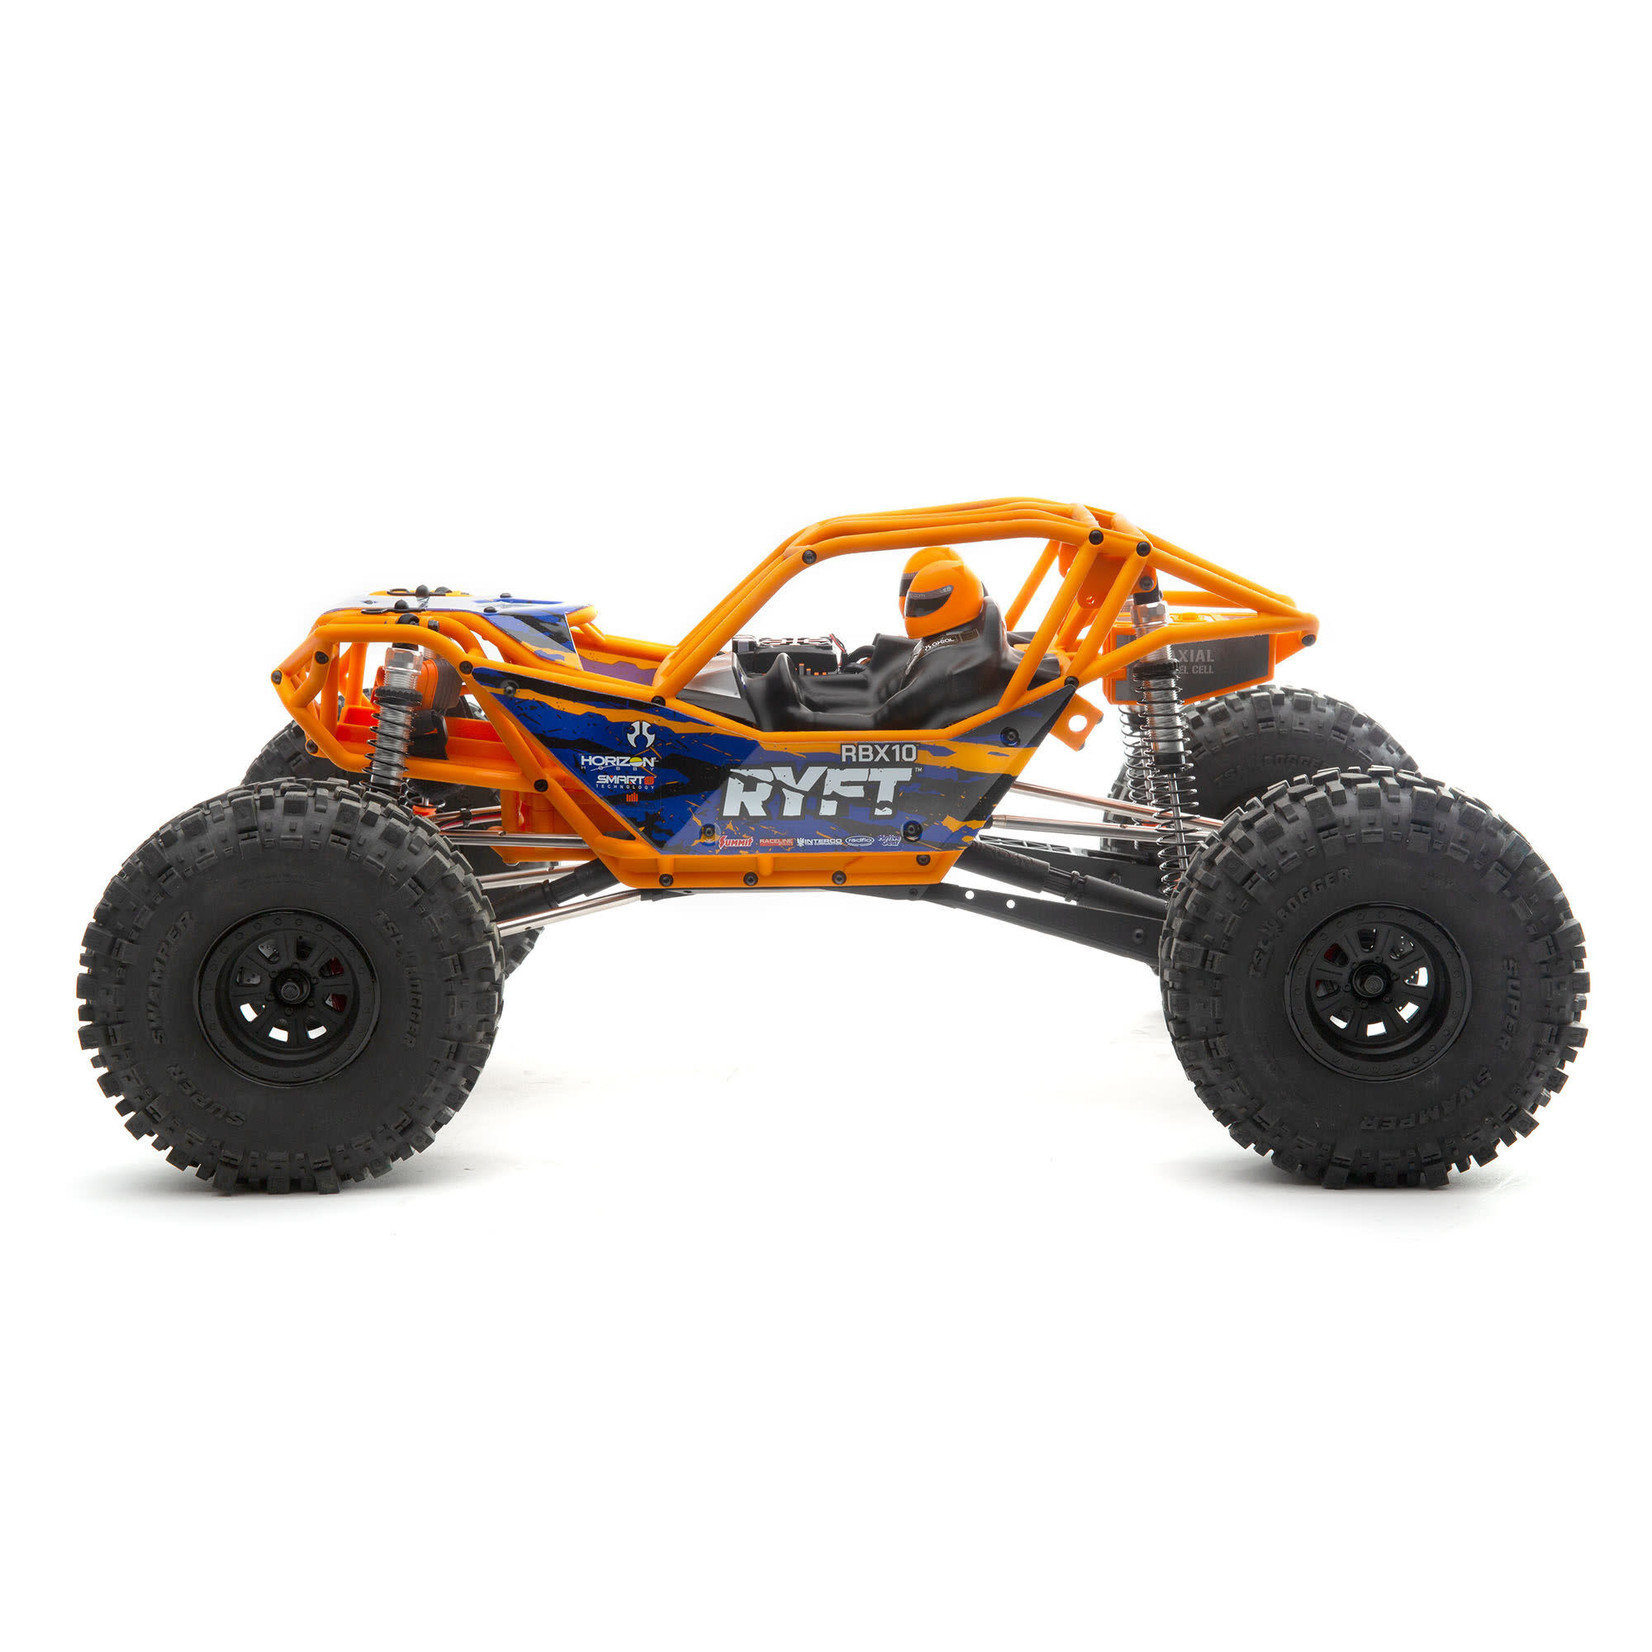 Axial AXI03005 Axial RBX10 Ryft 1/10th 4WD RTR